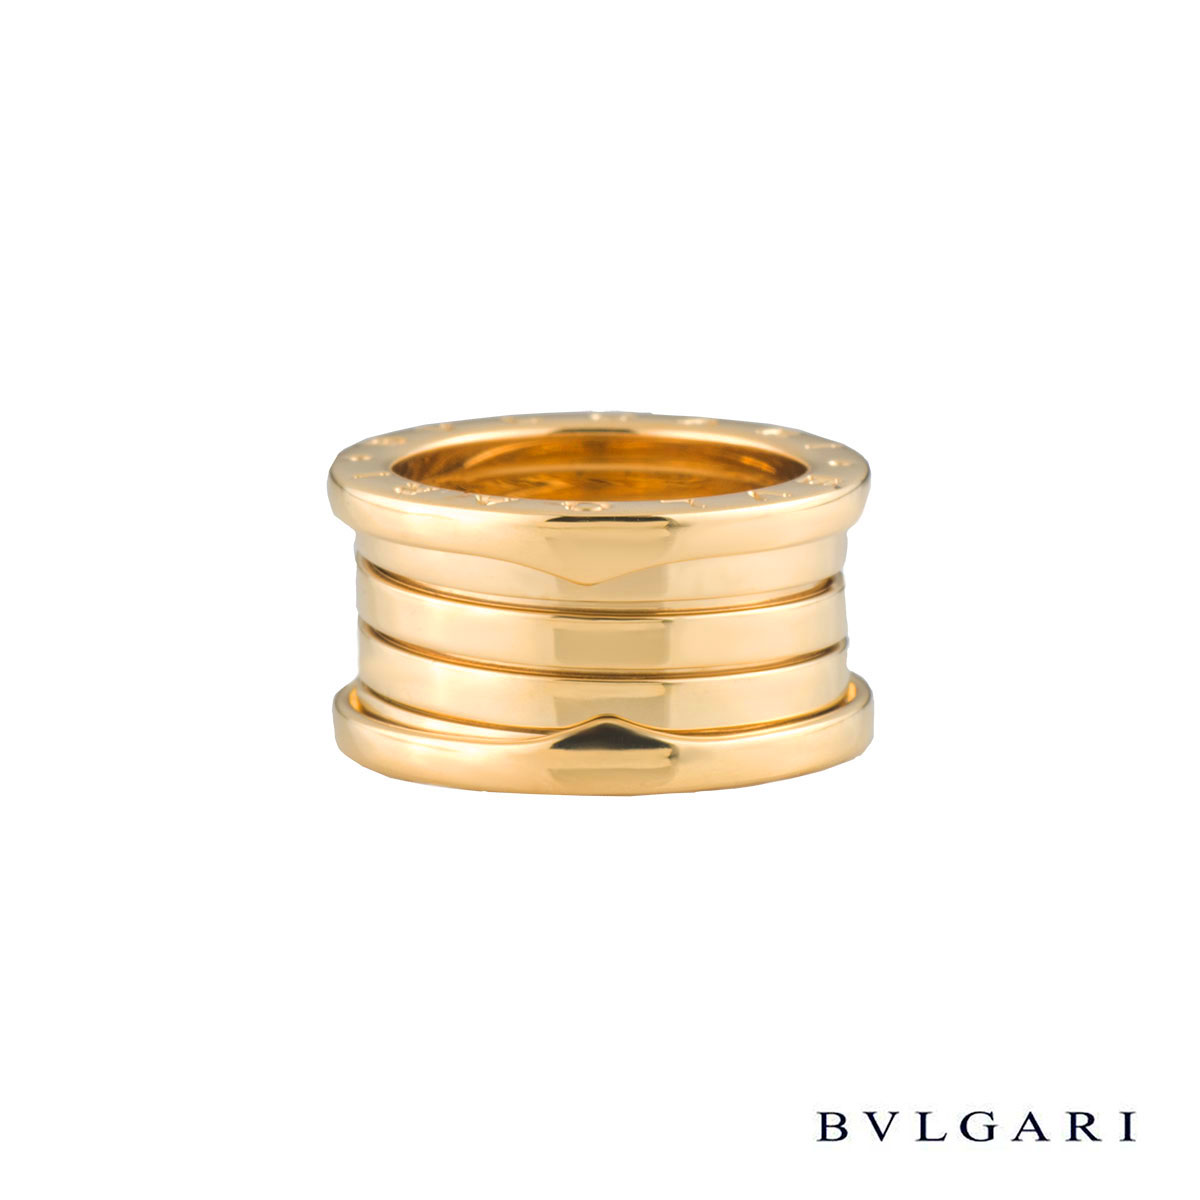 Bvlgari Yellow Gold B.Zero1 Ring AN191025